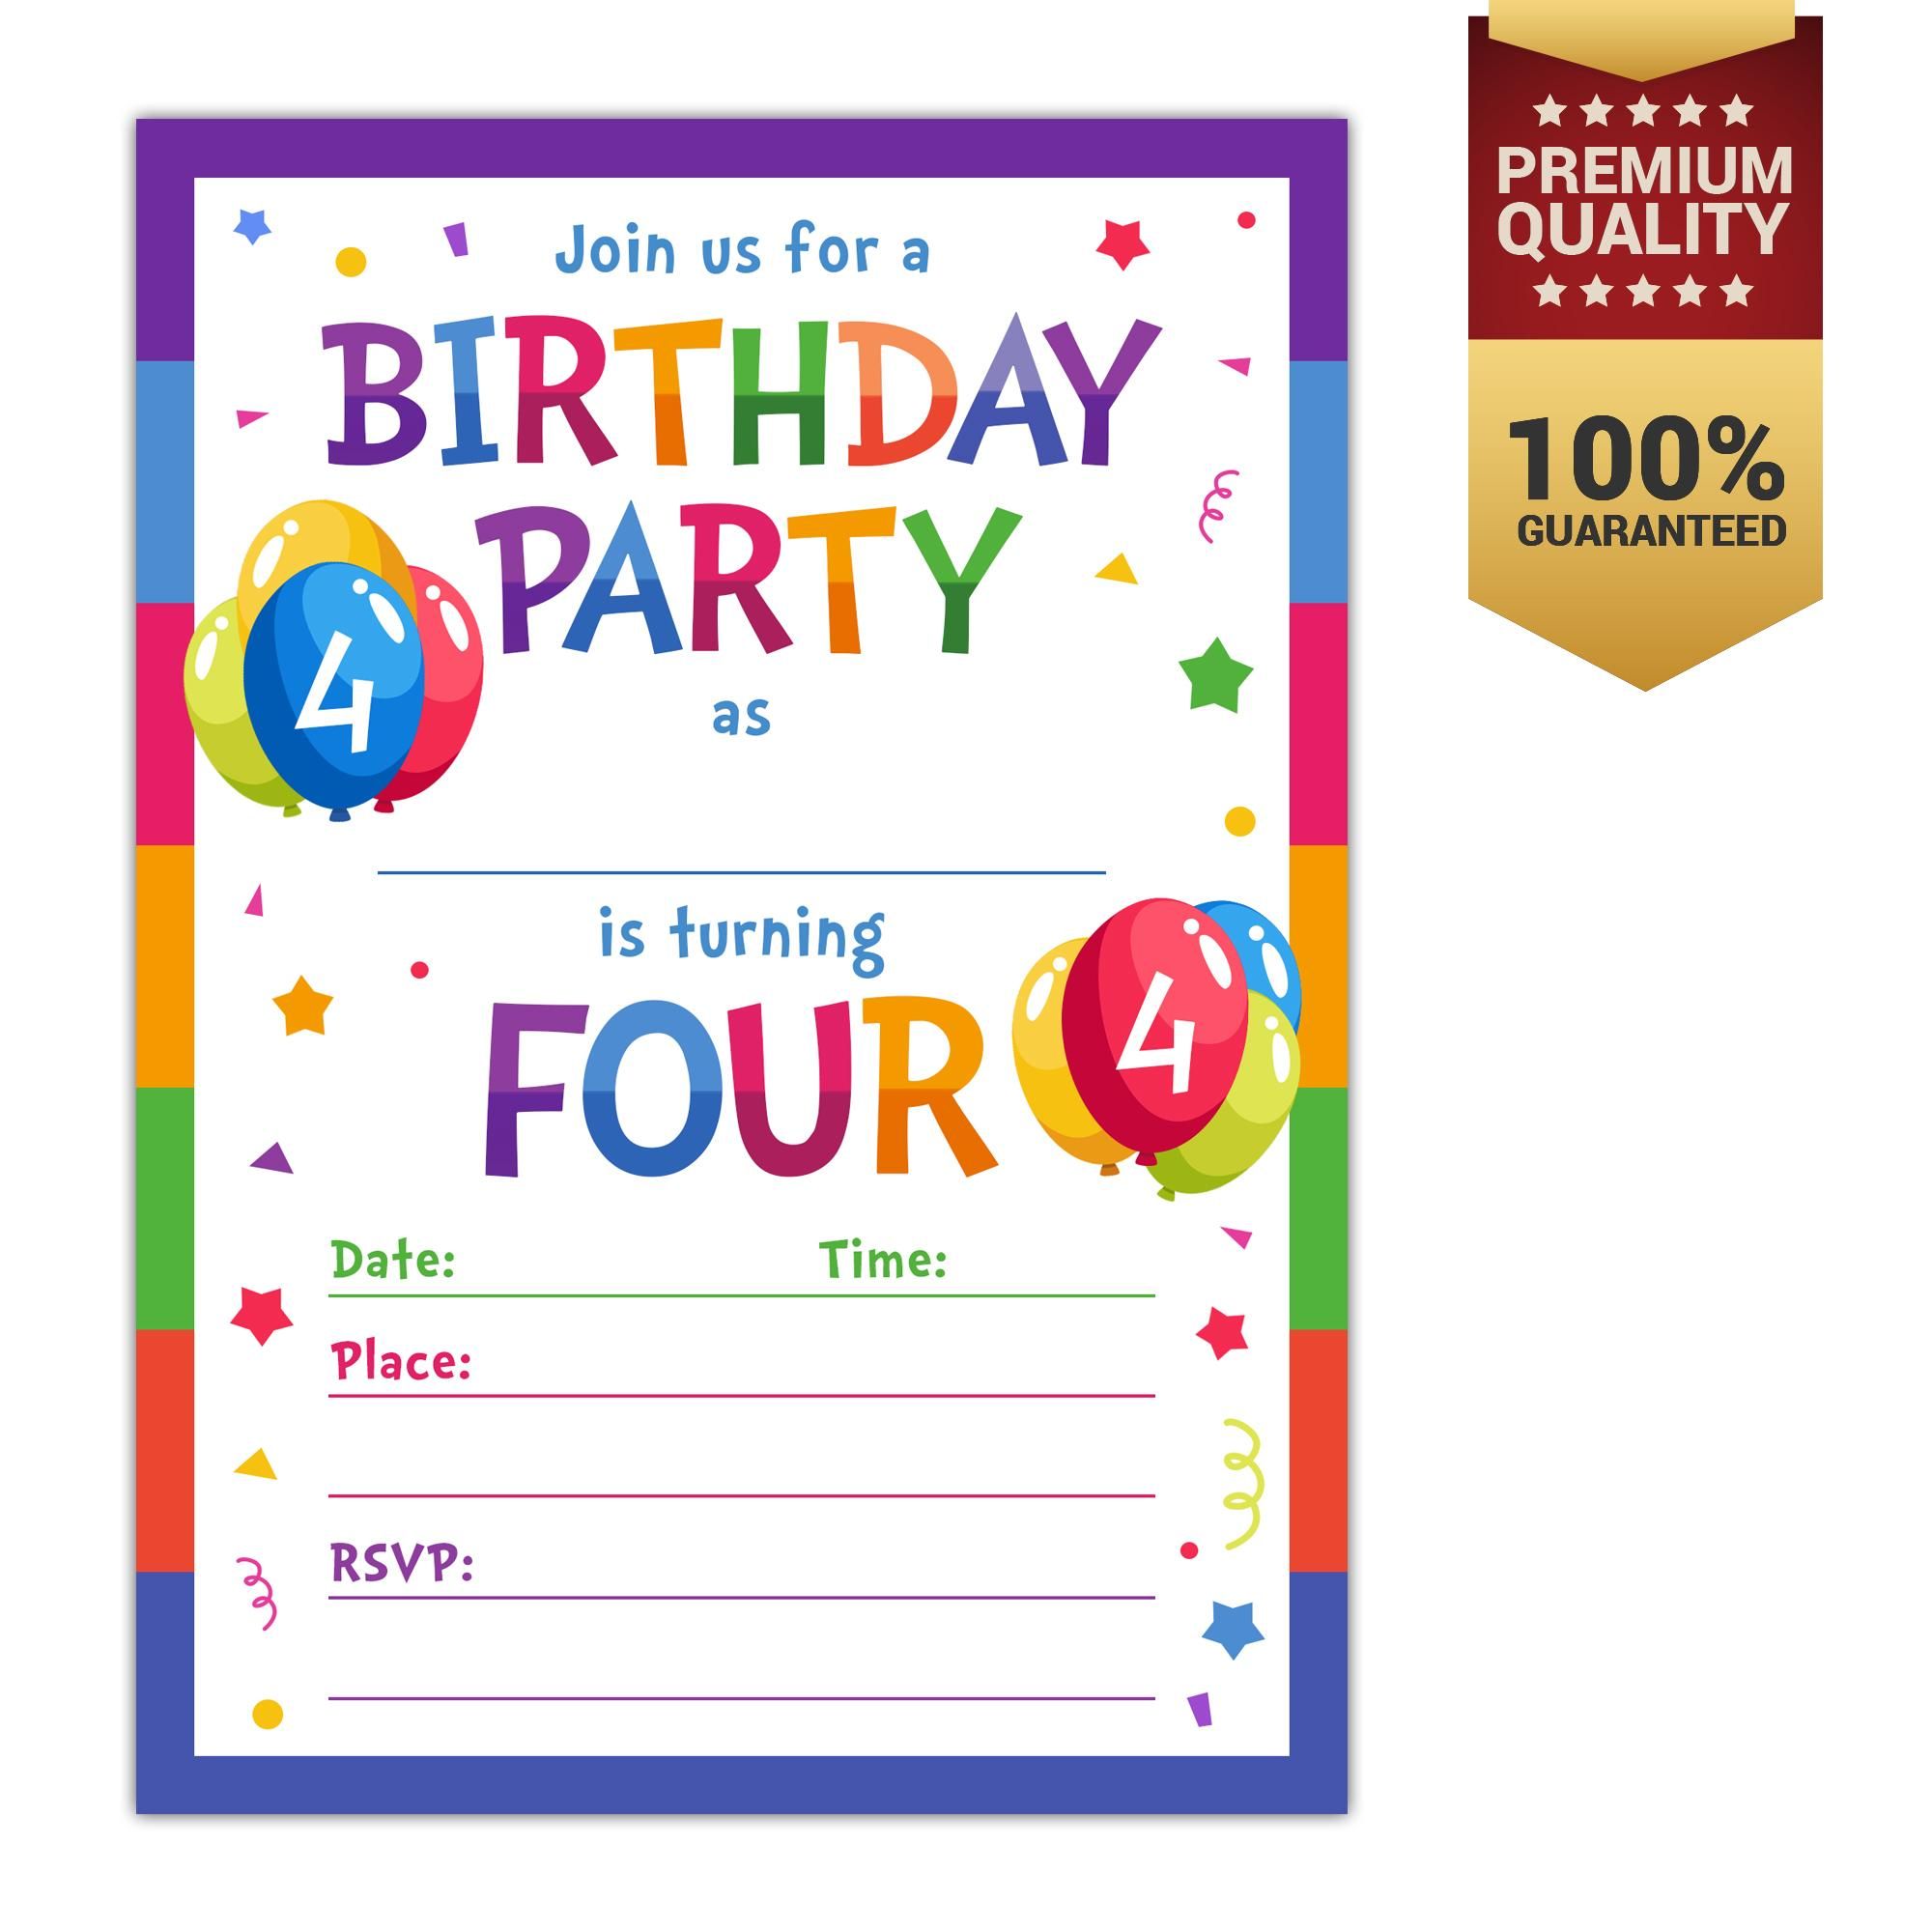 Invitation cards for sale party cards online brands prices 4th birthday party invitations with envelopes 10 count 4 year old kids birthday stopboris Image collections